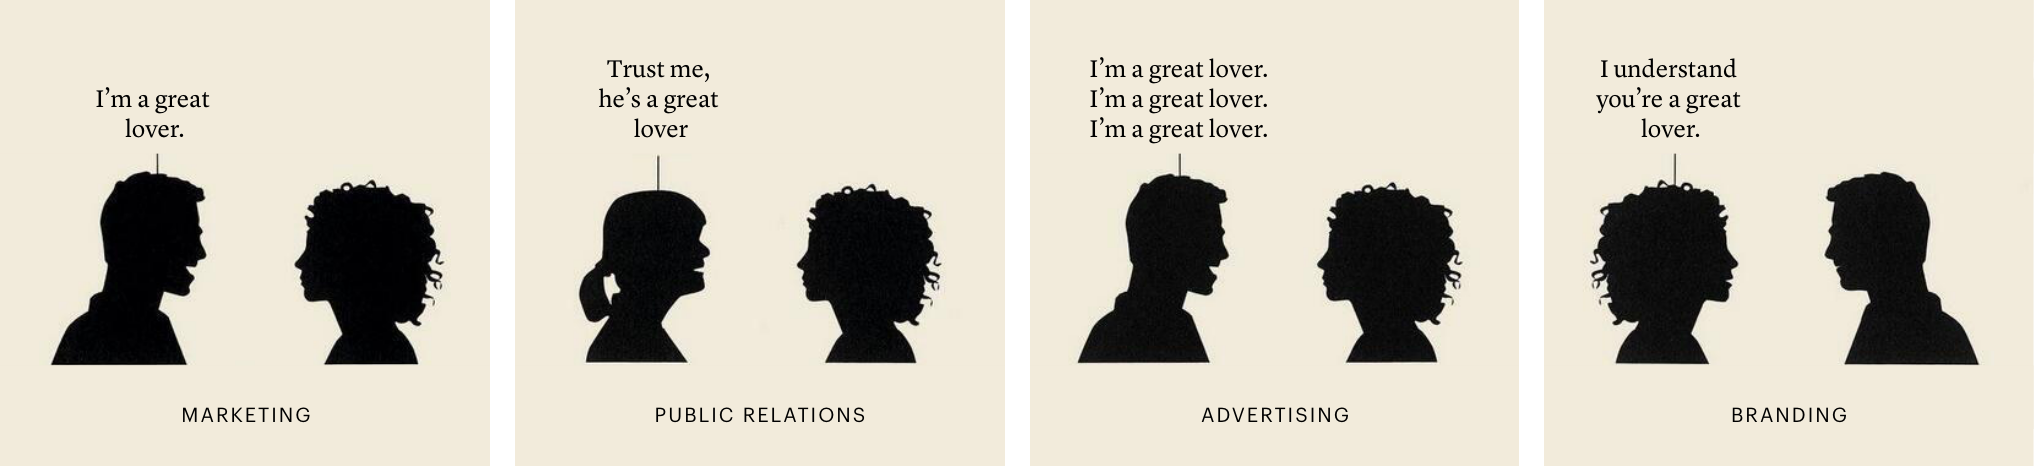 A great lover Branding Comic von Marty Neumeier